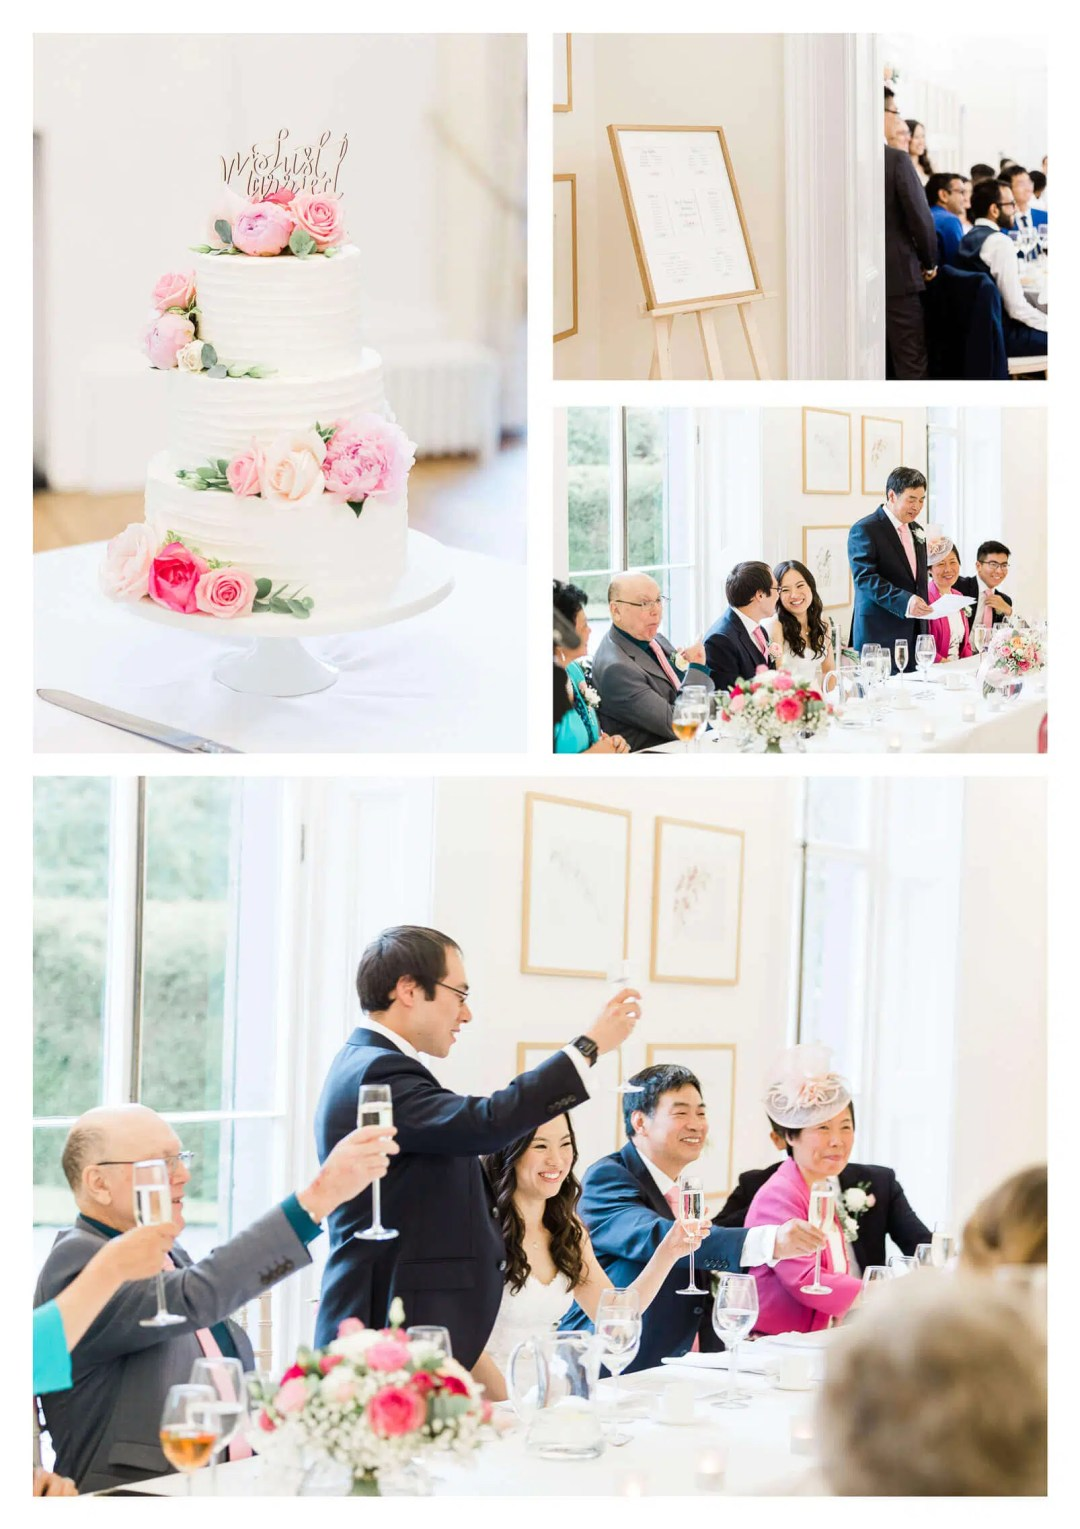 Cambridge Cottage wedding breakfast | Kew Gardens wedding photographer